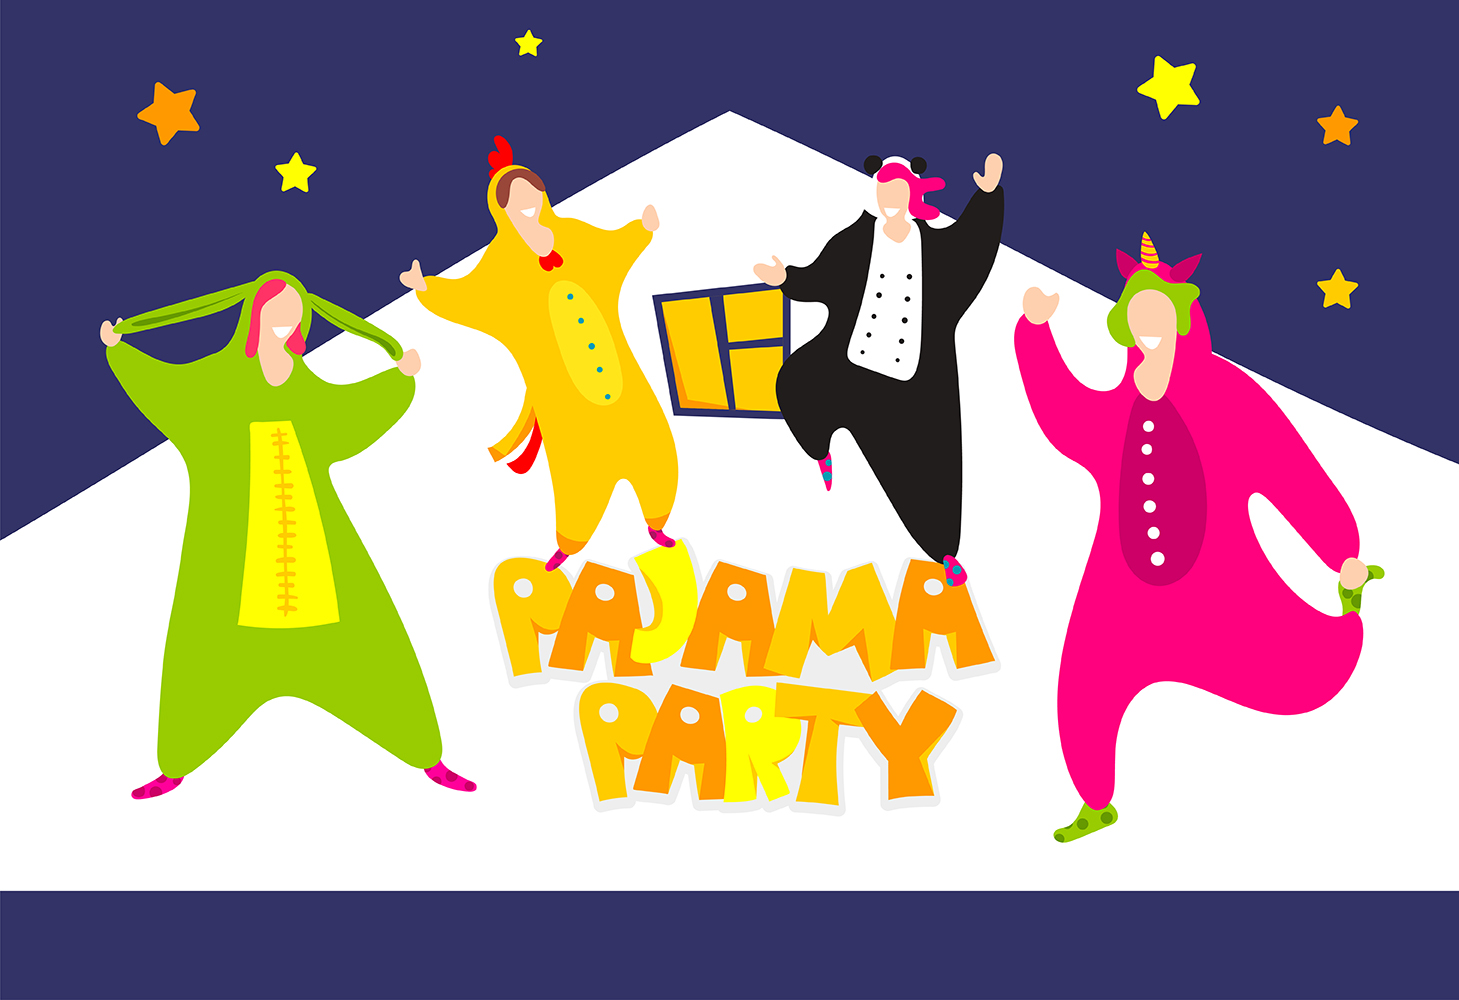 Download Free Pajama Party Friends In Pajamas Poster Graphic By Kapitosh for Cricut Explore, Silhouette and other cutting machines.